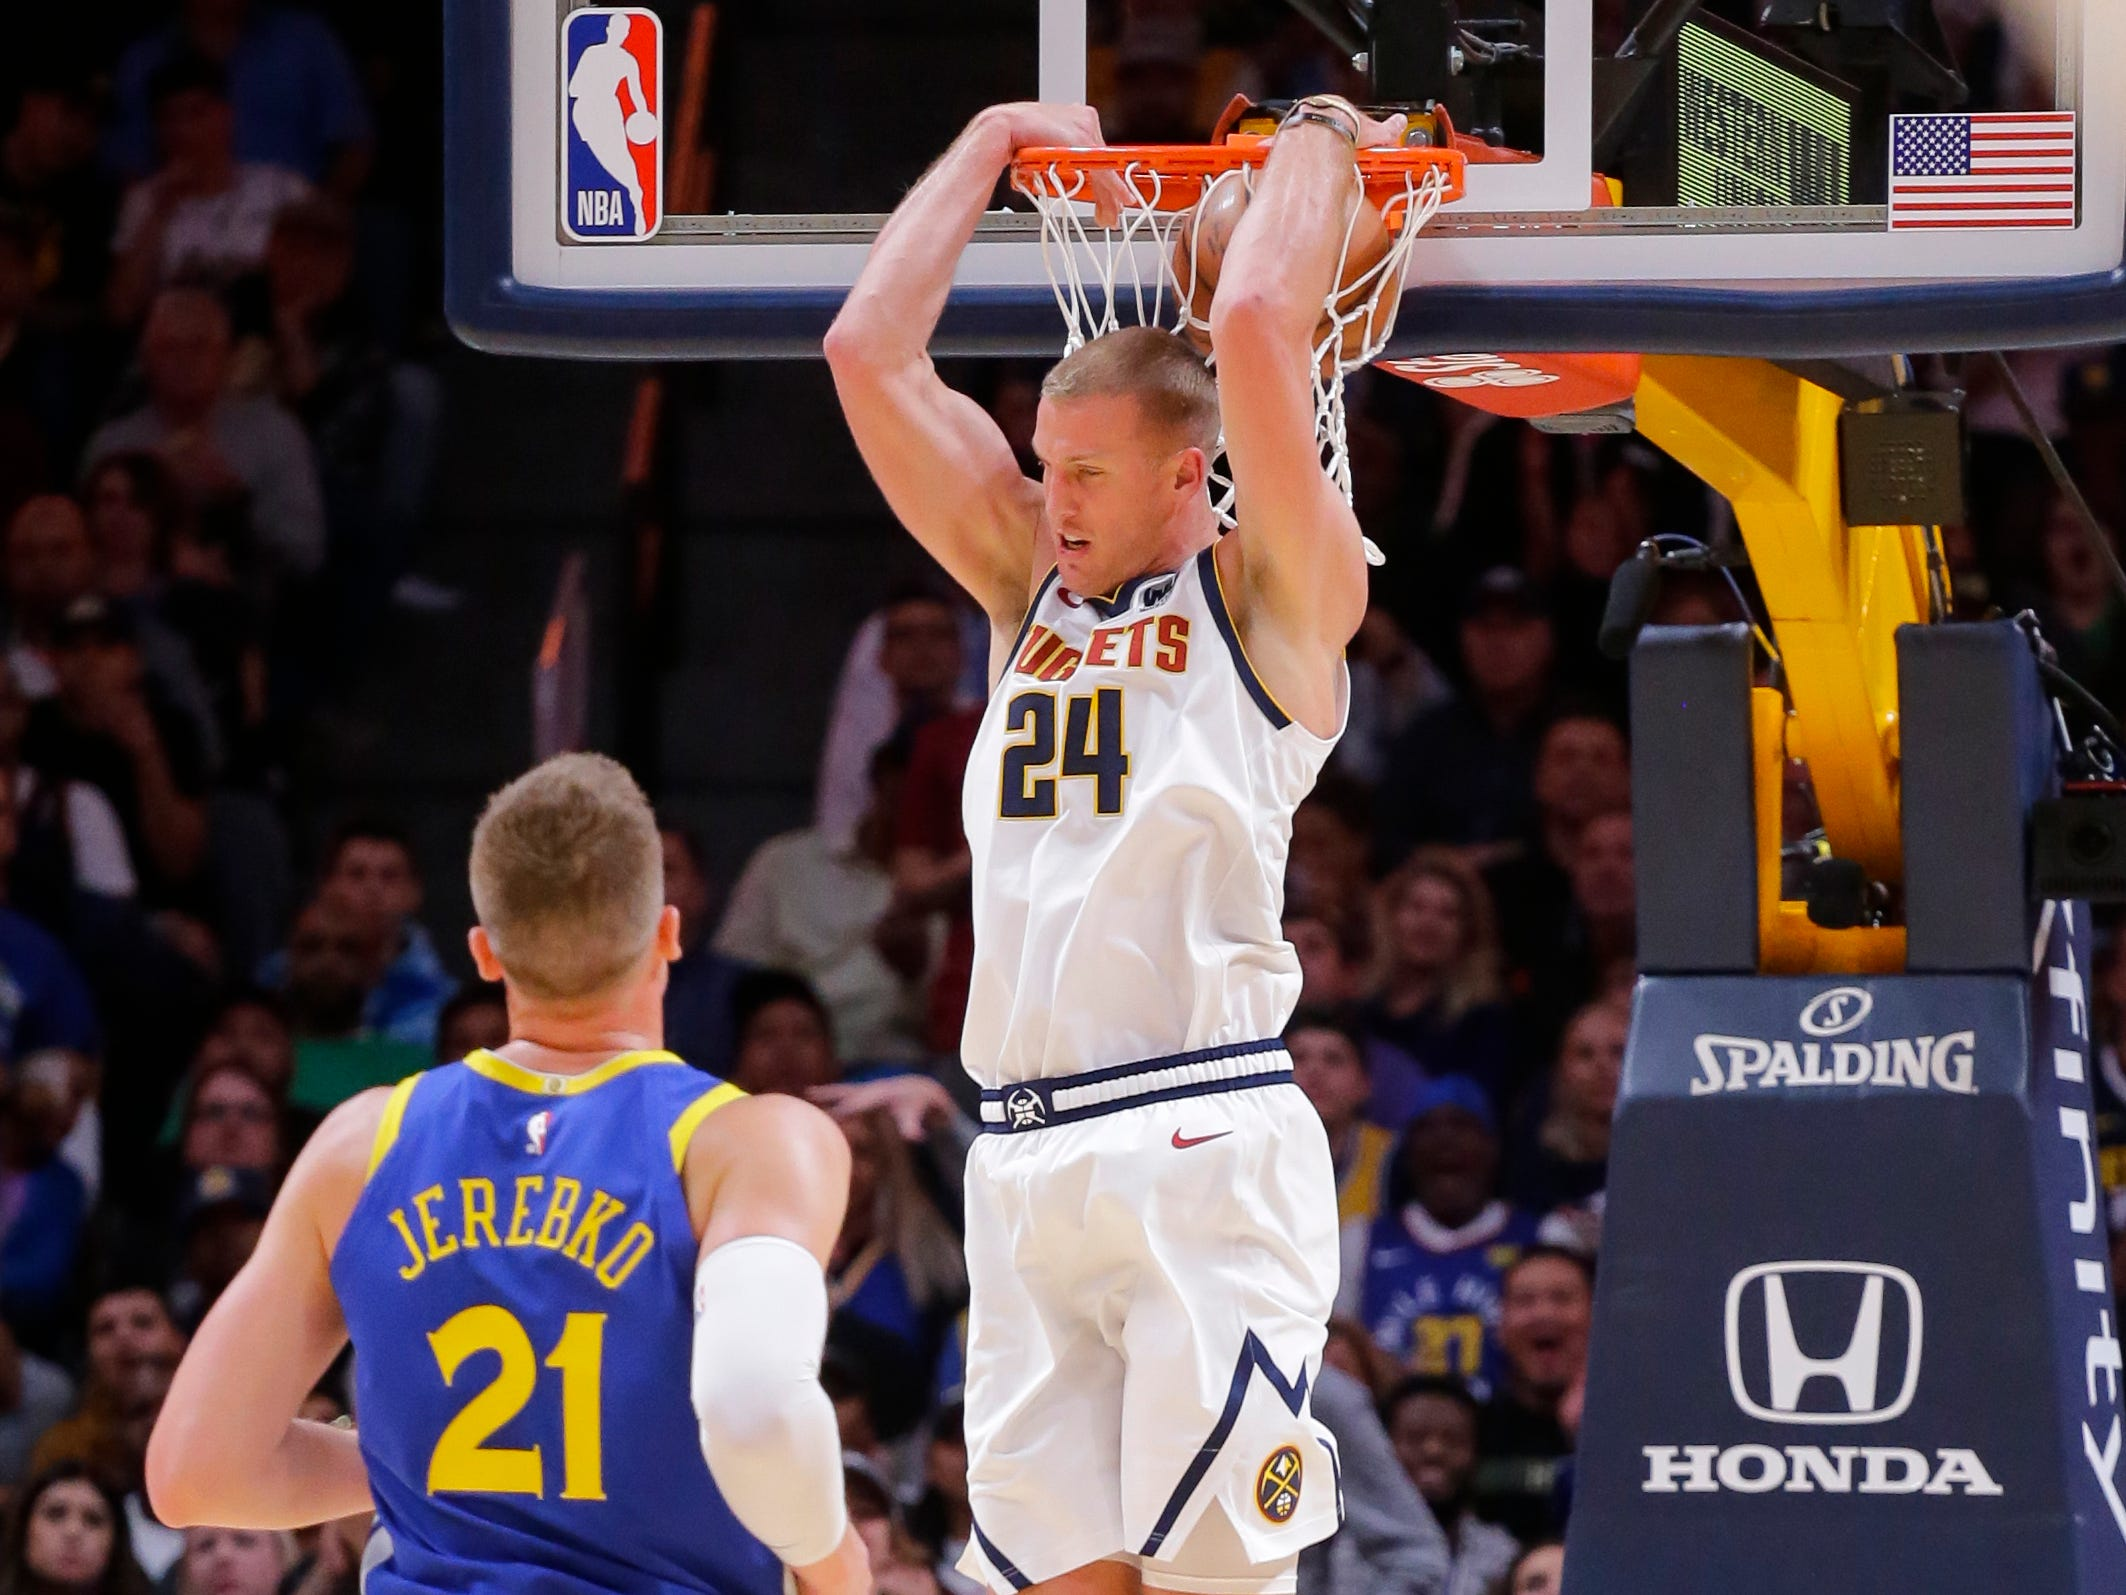 Oct. 21: Nuggets forward Mason Plumlee throws in a reverse two-handed jam against the Warriors.